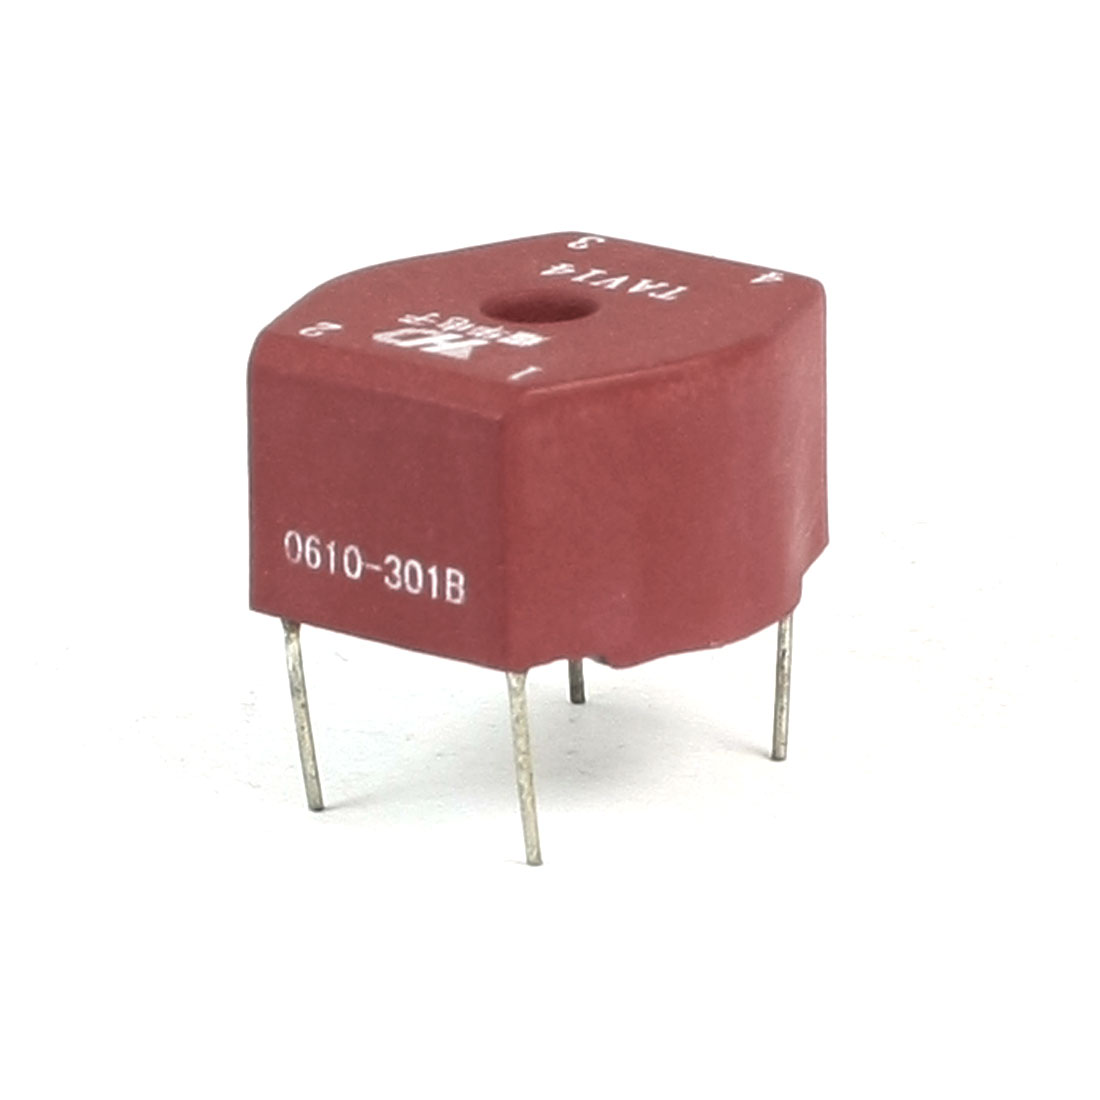 TAC14 Dual Ratio 3000:1 1500:1 4 Pin PCB Mounting Current Transformer